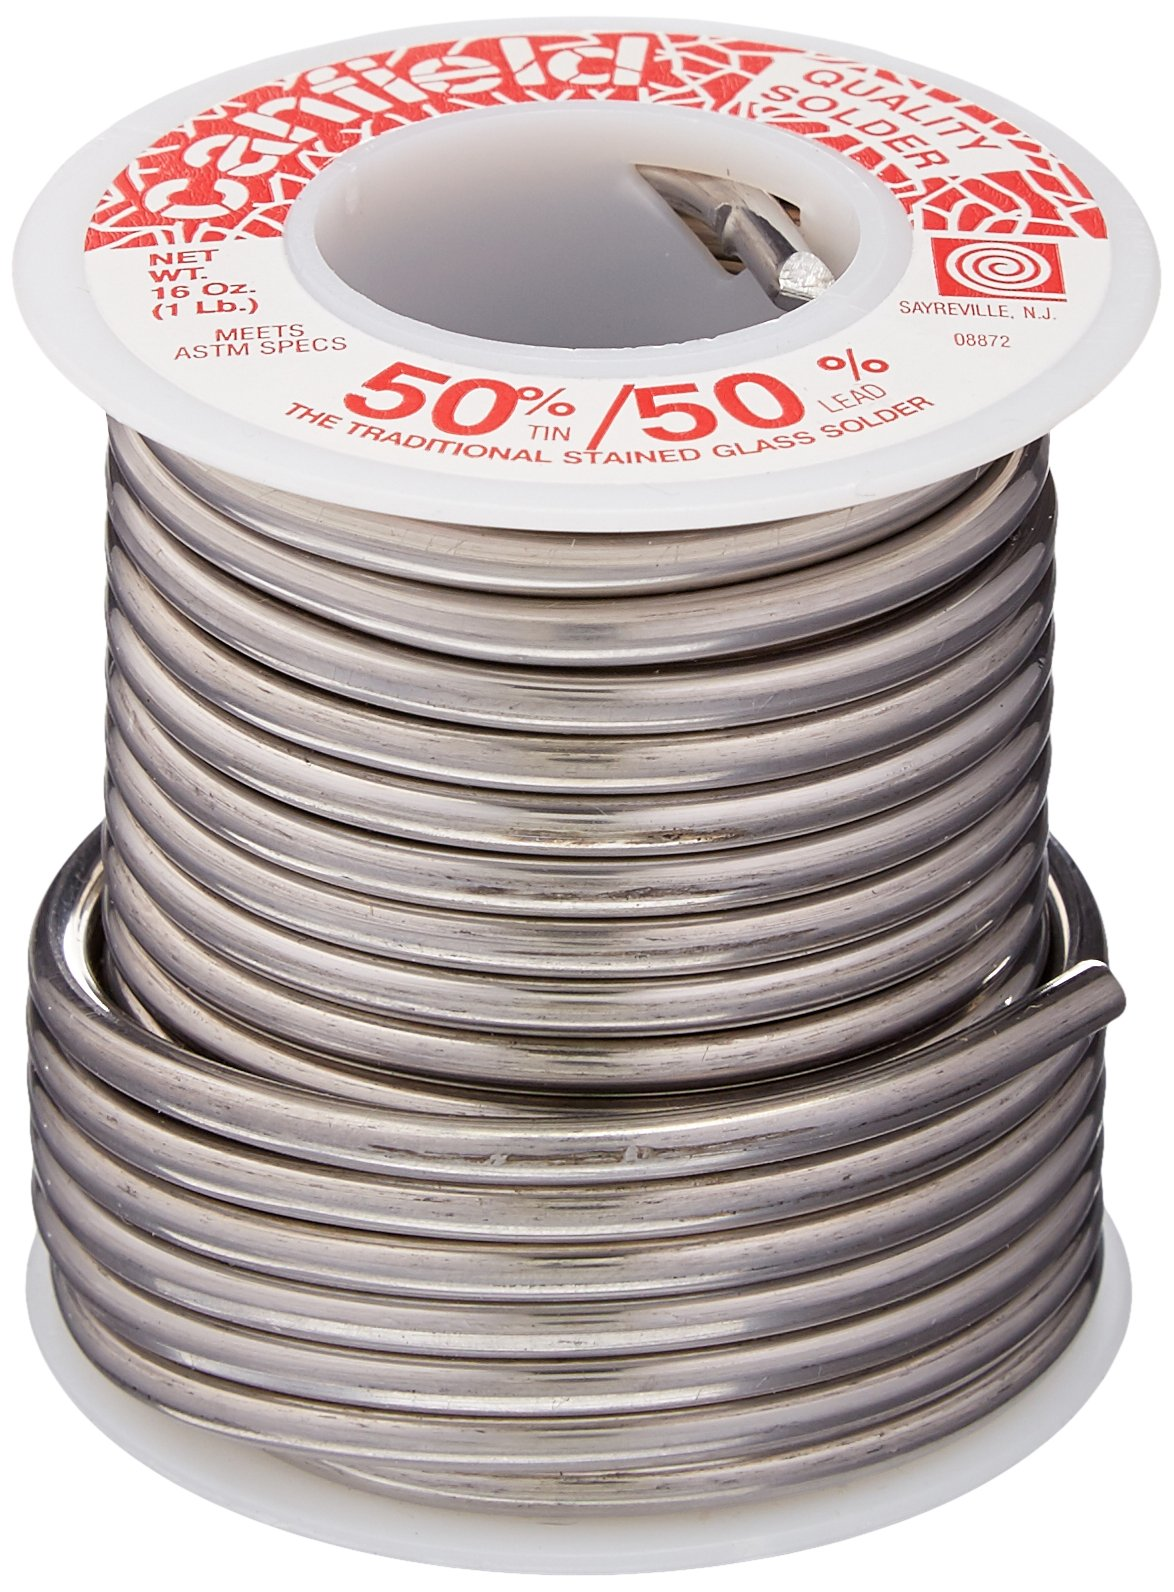 Canfield 50/50 Solder - 1 Lb Roll by Canfield